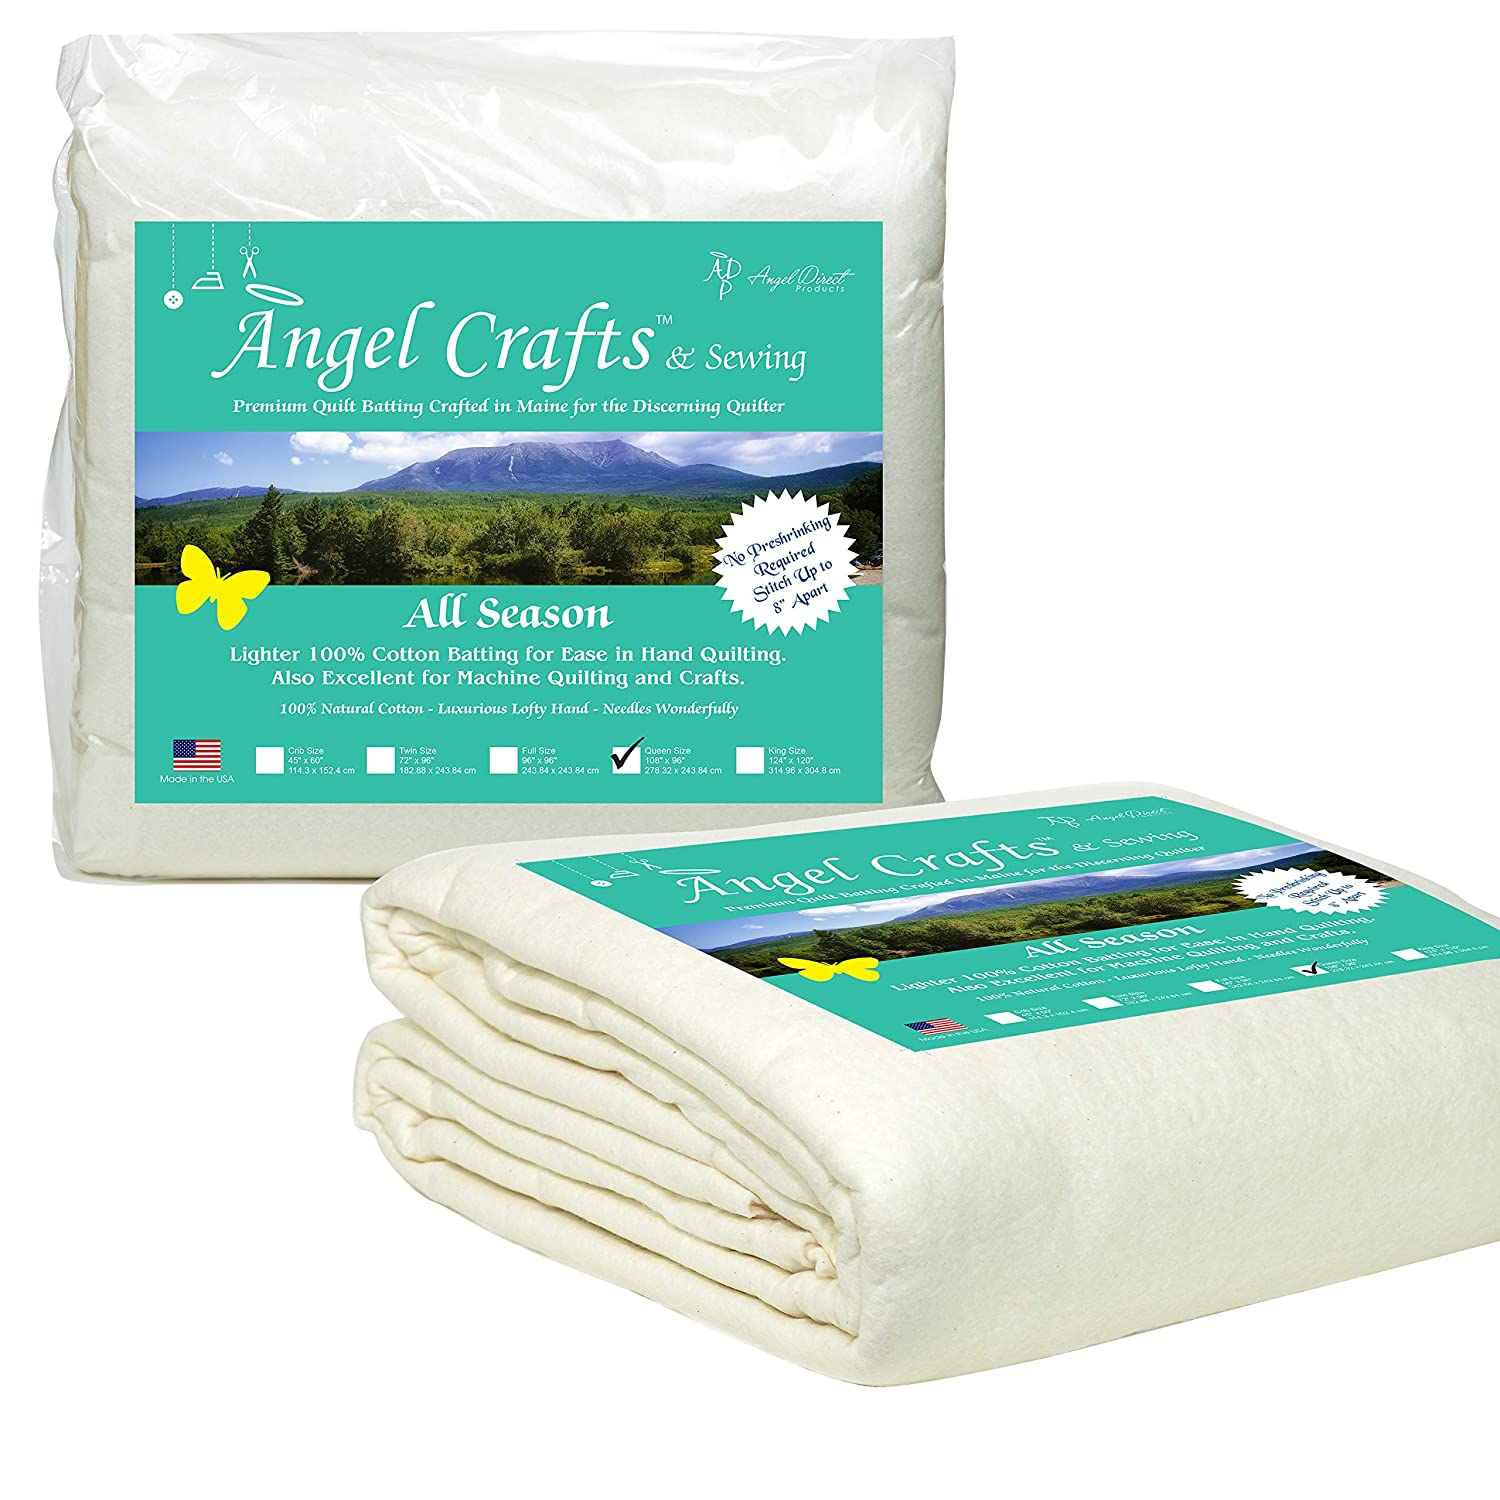 Angel Crafts and Sewing Cotton Batting for Quilts: Purely Natural All Season Quilt Batting by the Roll